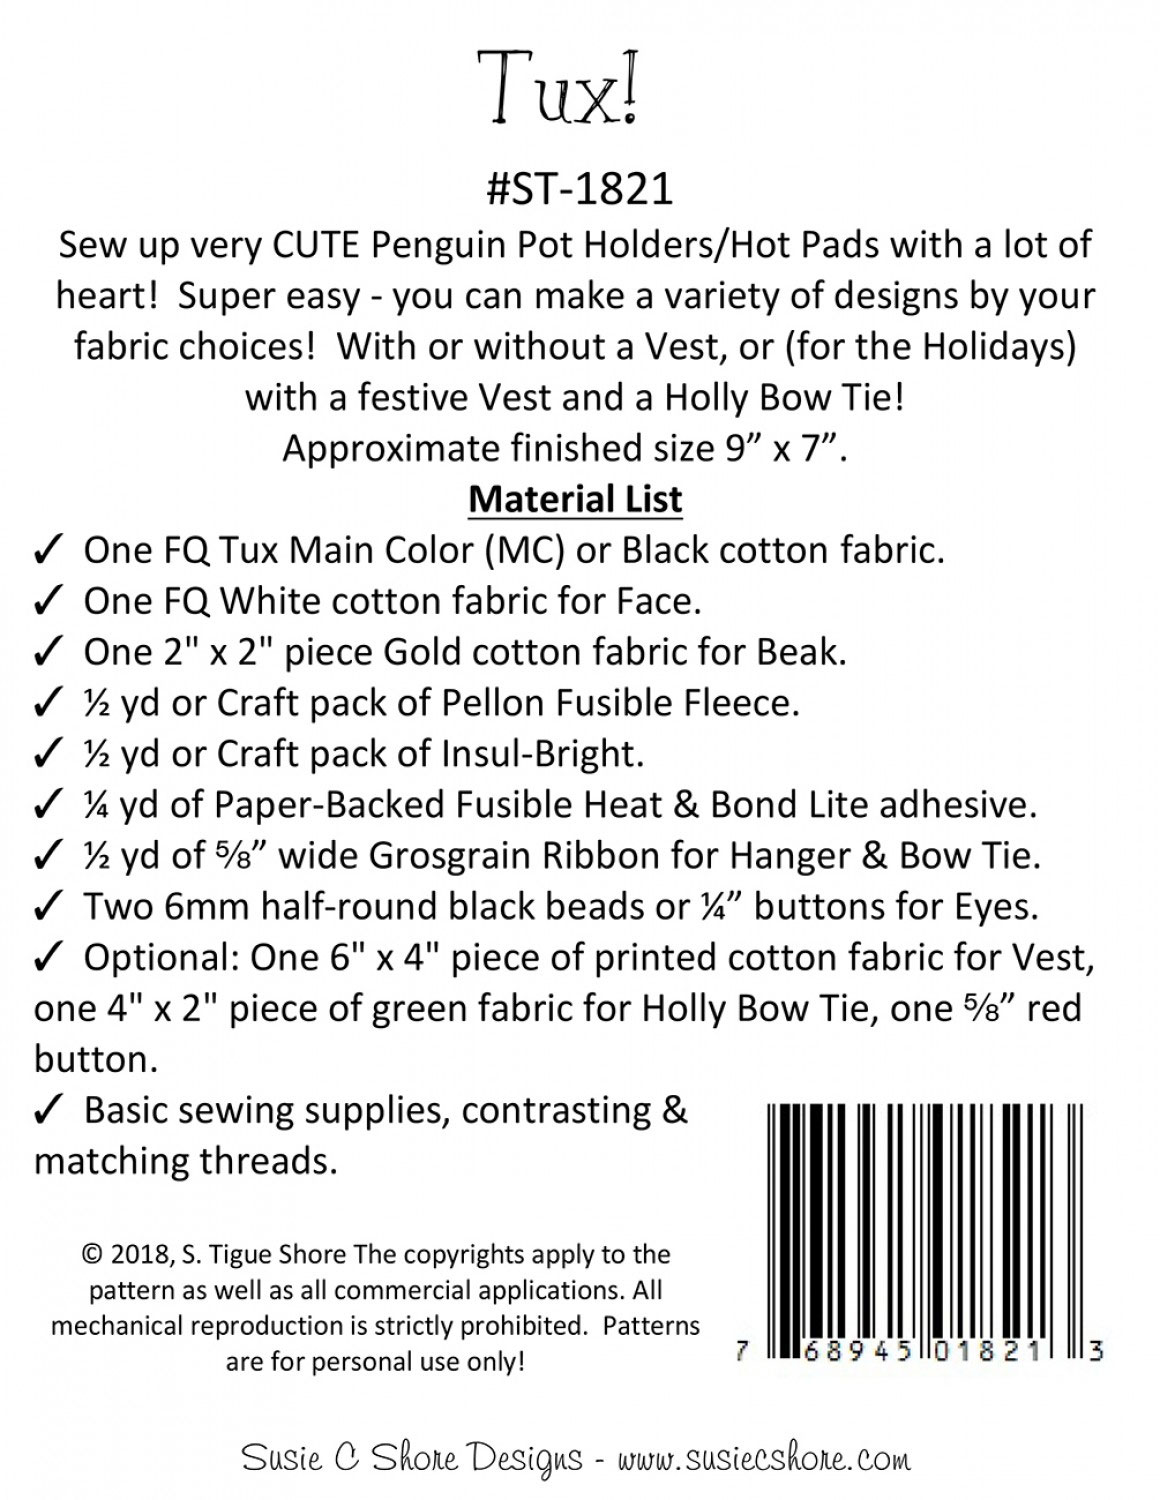 Tux-sewing-pattern-Susie-C-Shore-back